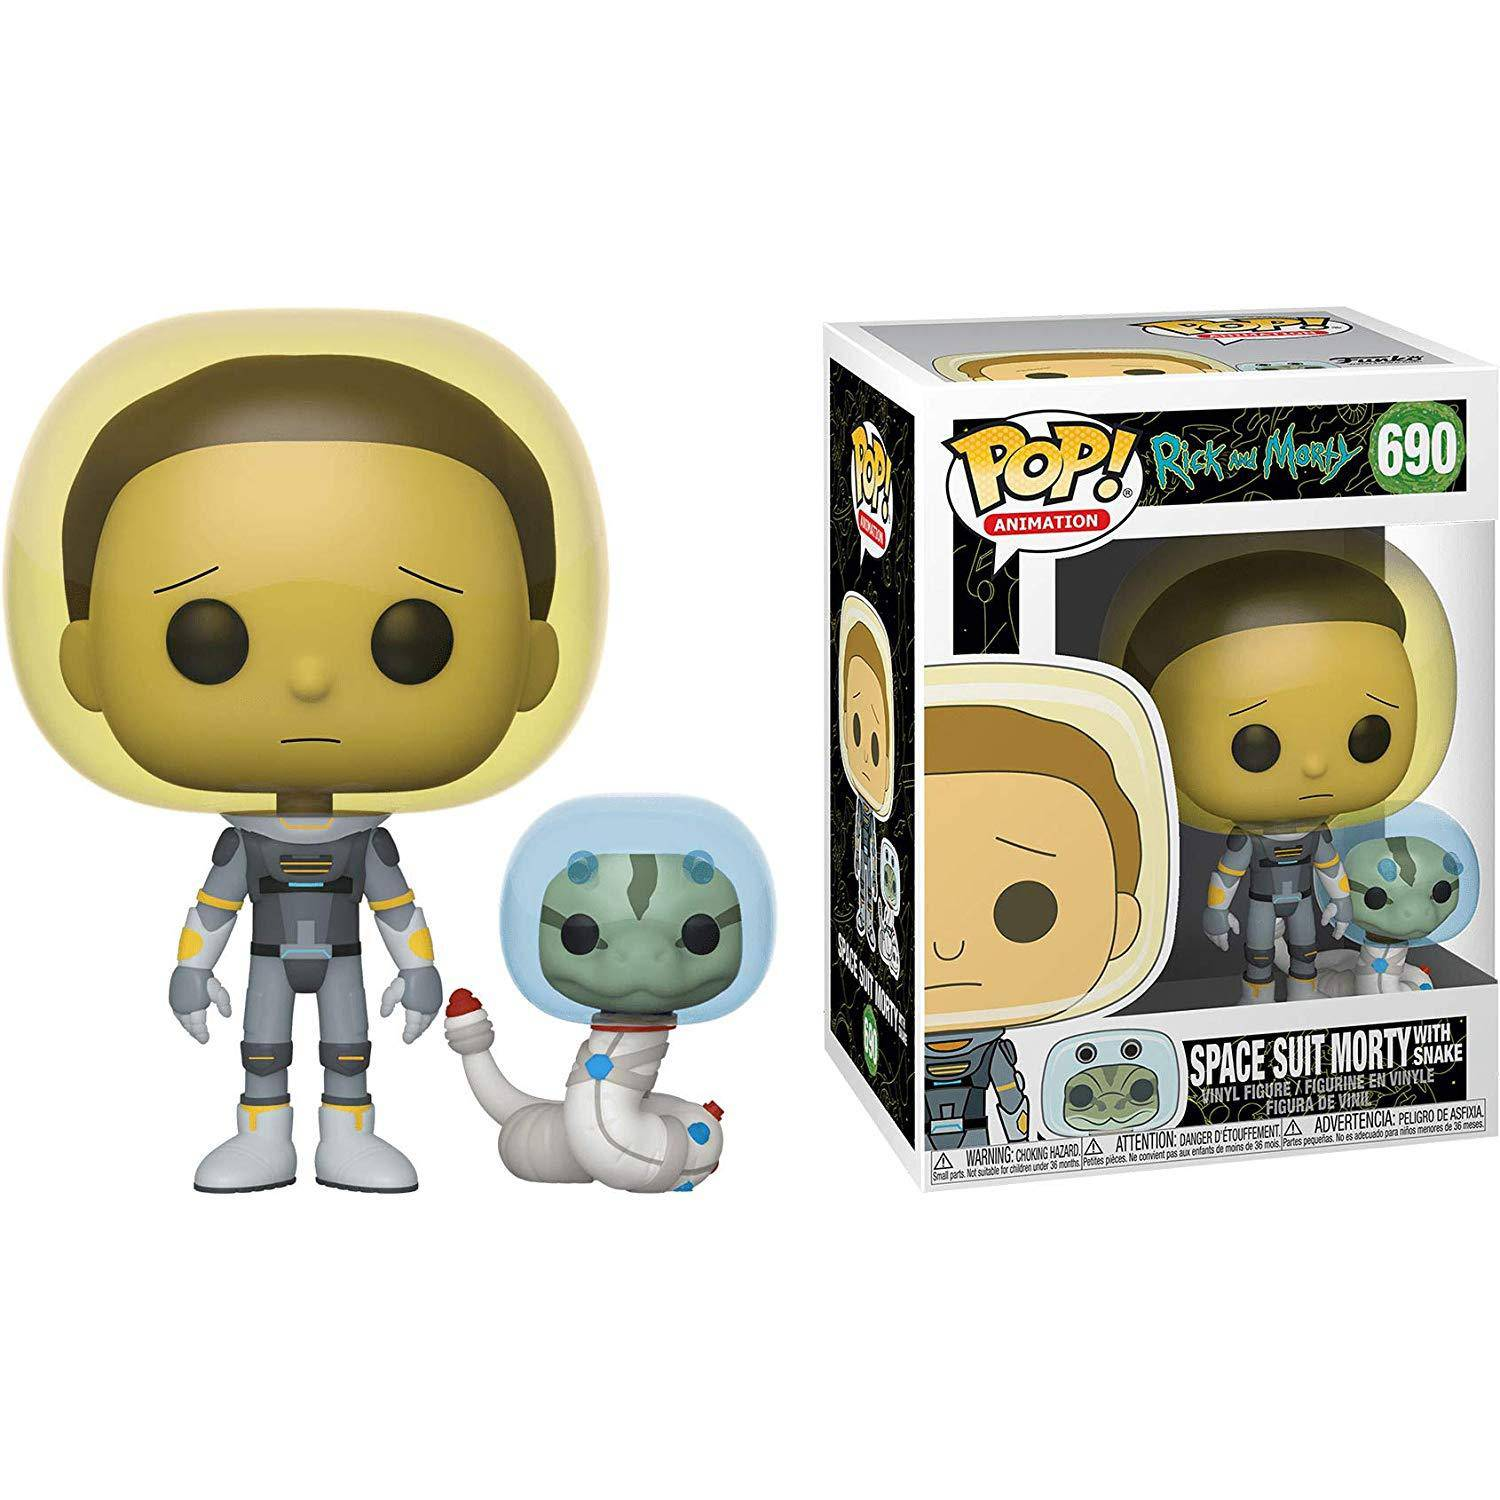 Rick & Morty, Space Suit Morty